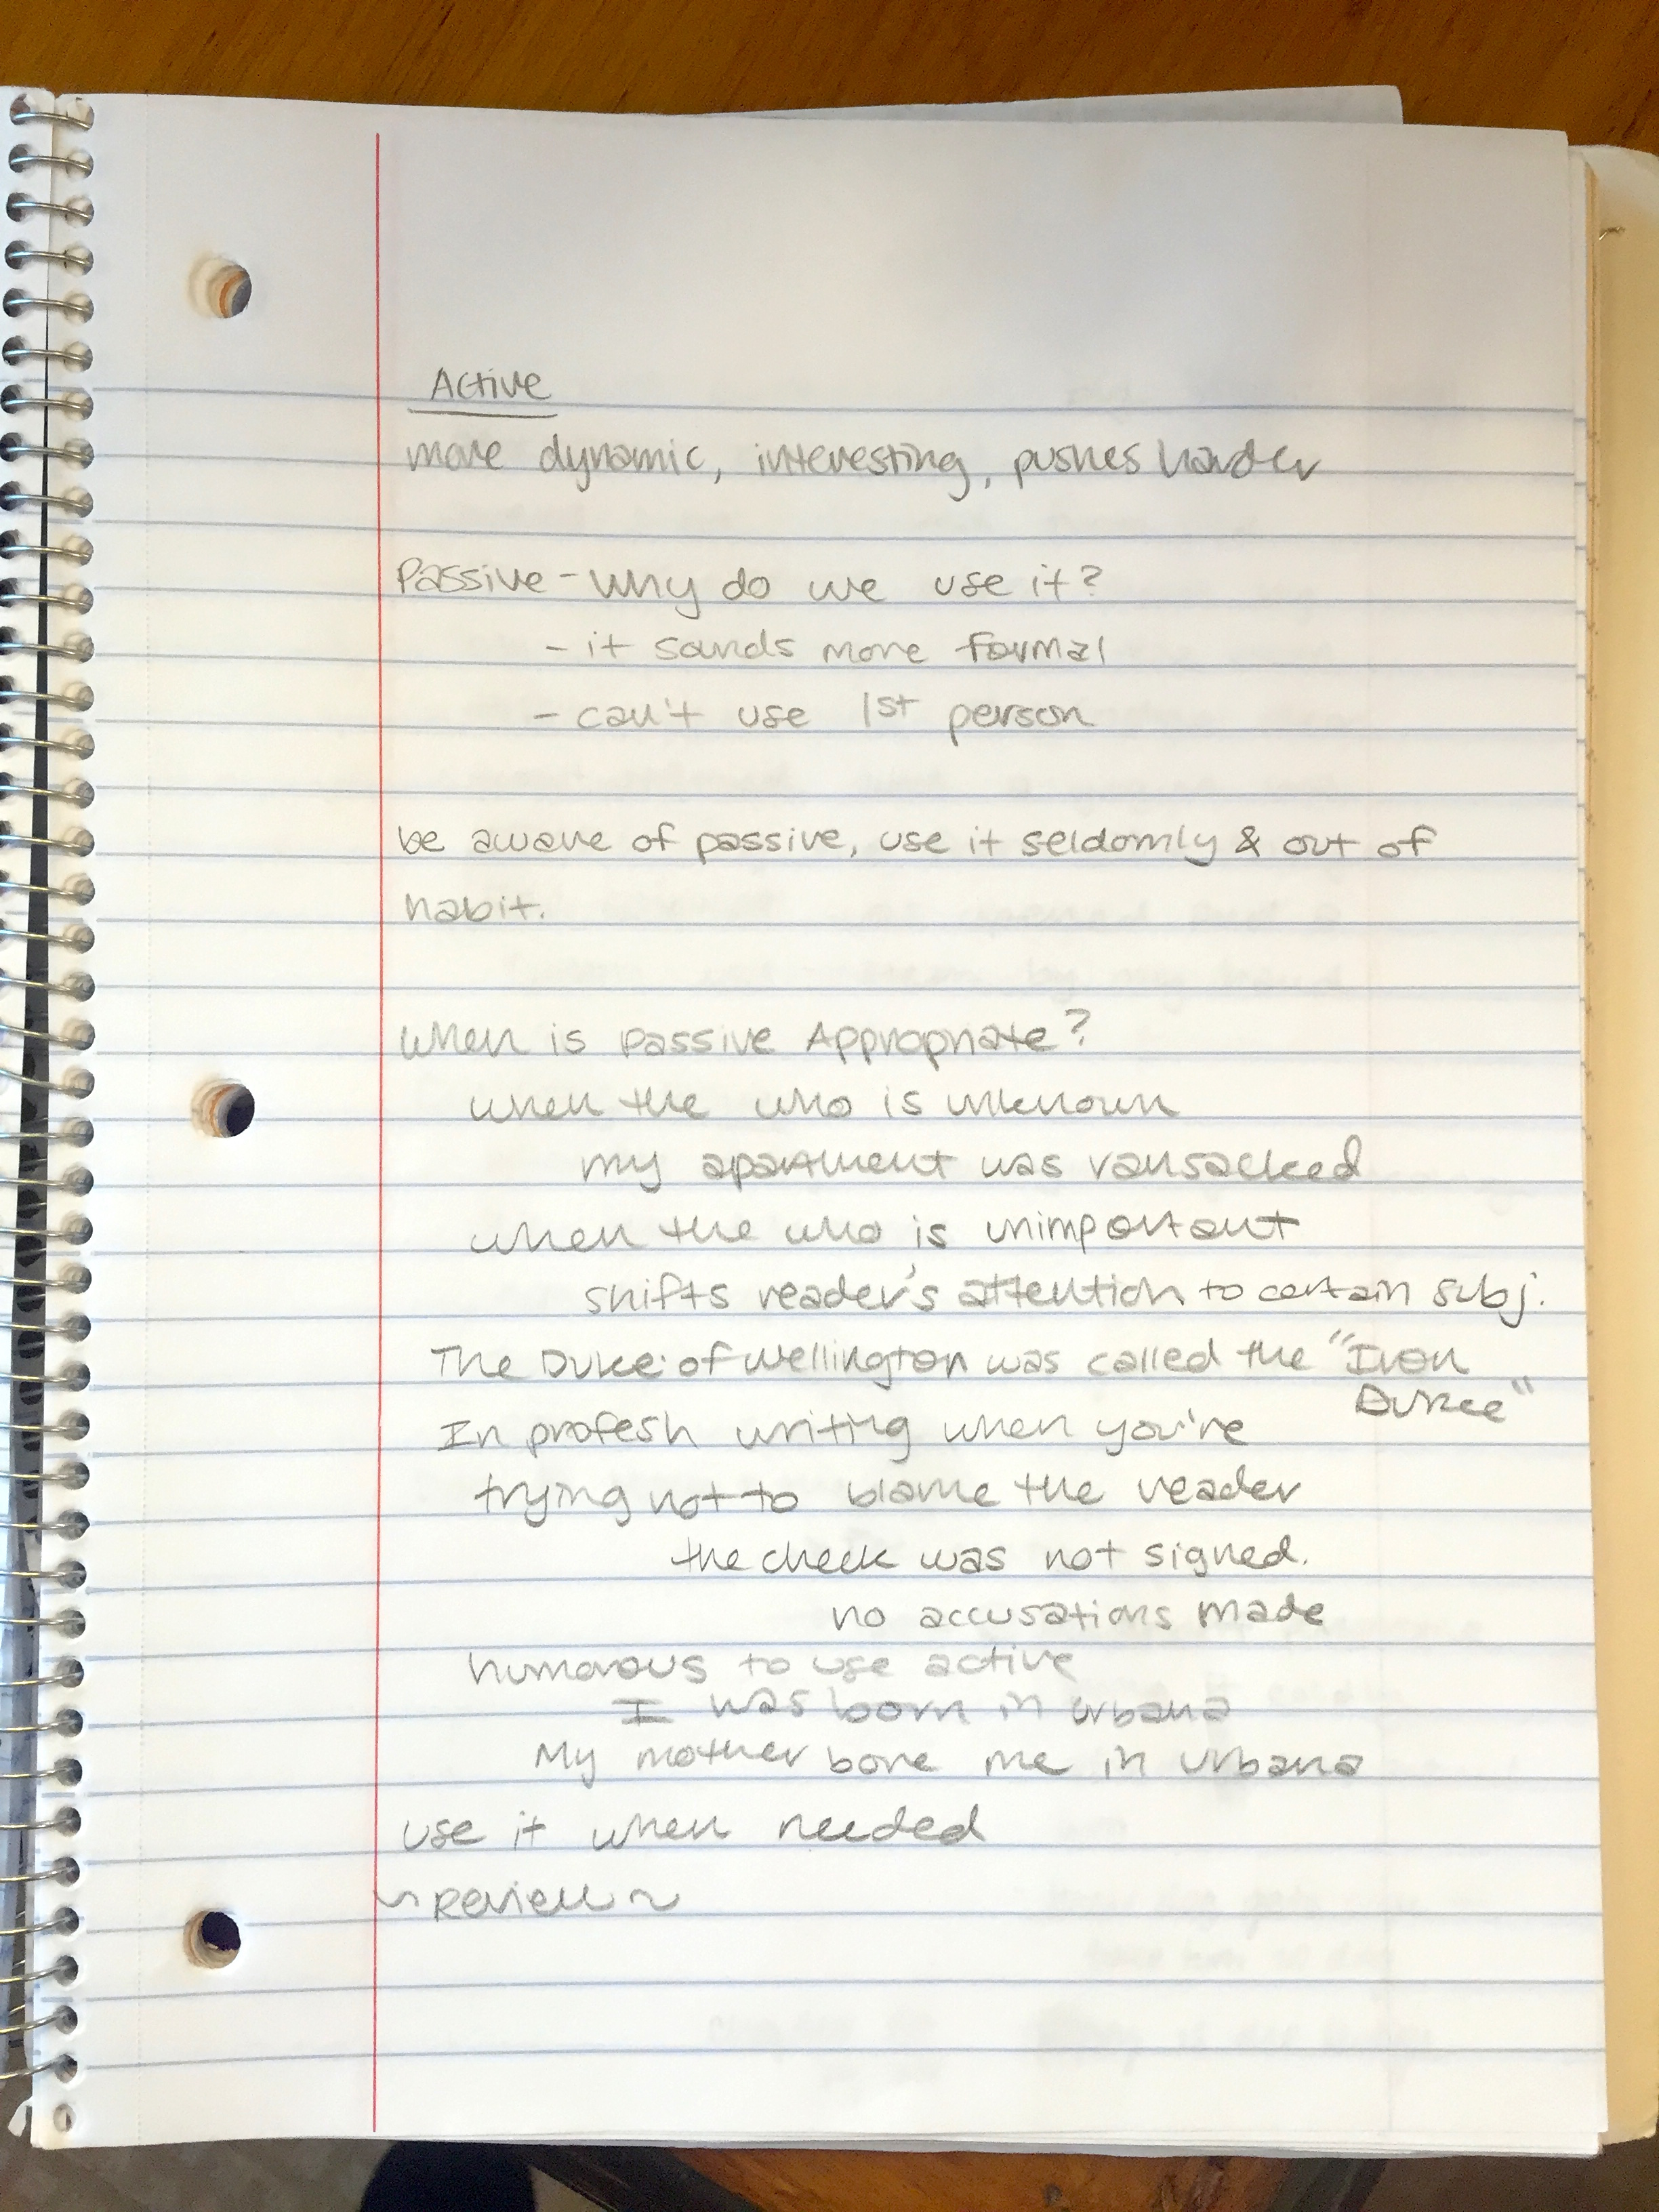 a literary excavation media artifacts ms hays told us that when writing english essays writers should stay away from using passive voice here are my notes explaining how to avoid using